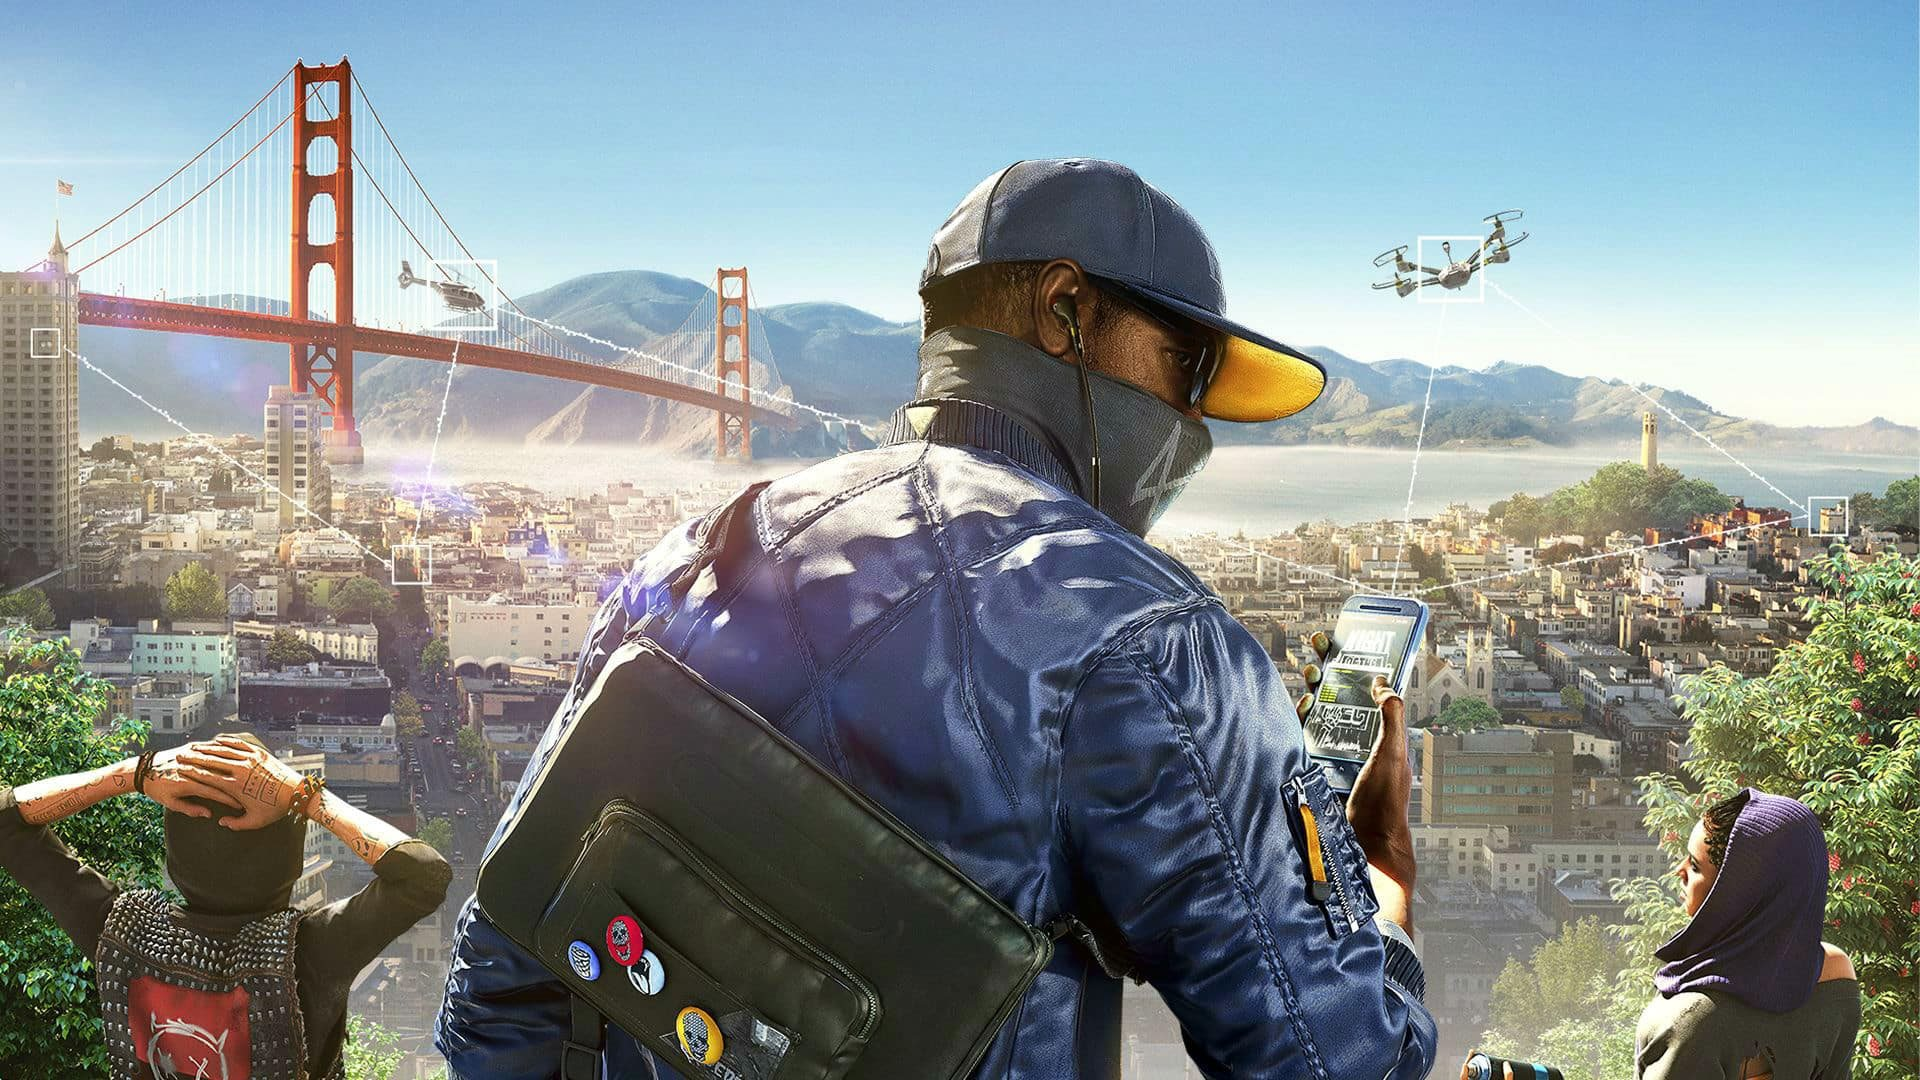 Watch Dogs Legion; watchdogs: watch dogs 2